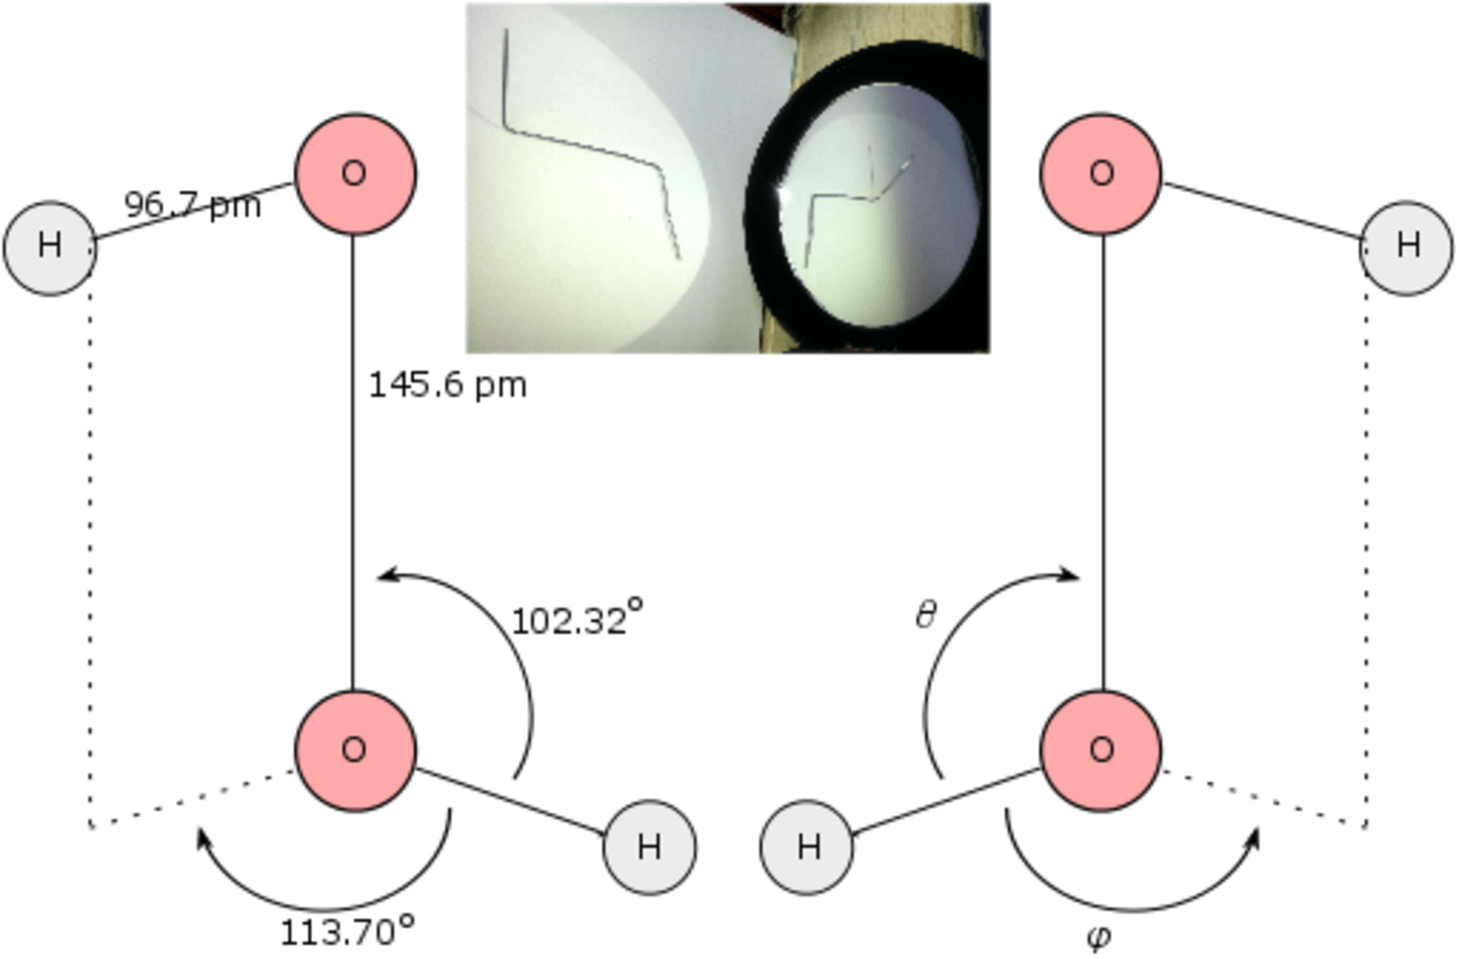 Projections of 3-dimensional structural representations of the M (left) and P (right) enantiomers of hydrogen peroxide. The inset shows a model for the P enantiomer, which we fabricated in the office from a paper clip; its image reflected in the framed oval mirror is the M enantiomer.